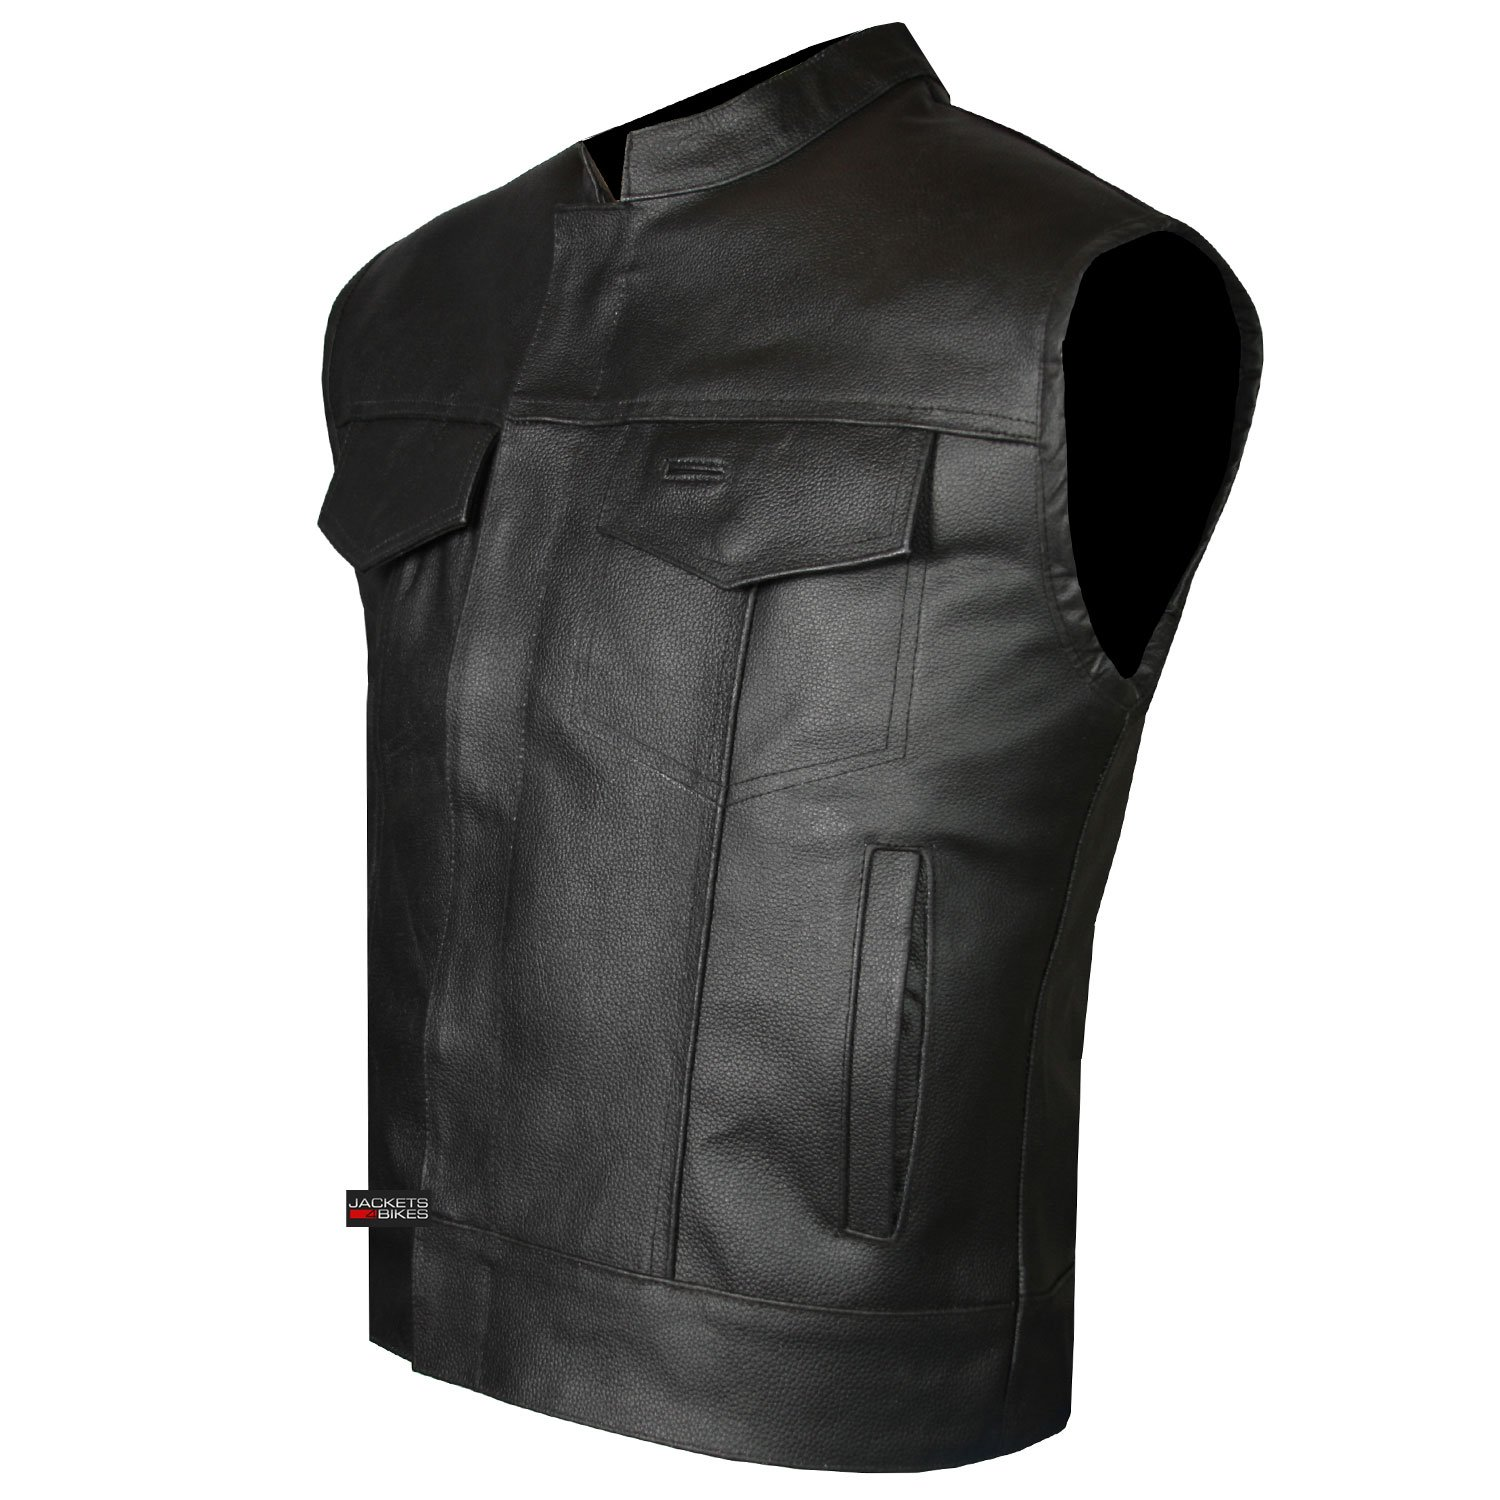 SOA Men's Leather Vest Anarchy Motorcycle Biker Club Concealed Carry Outlaws XL